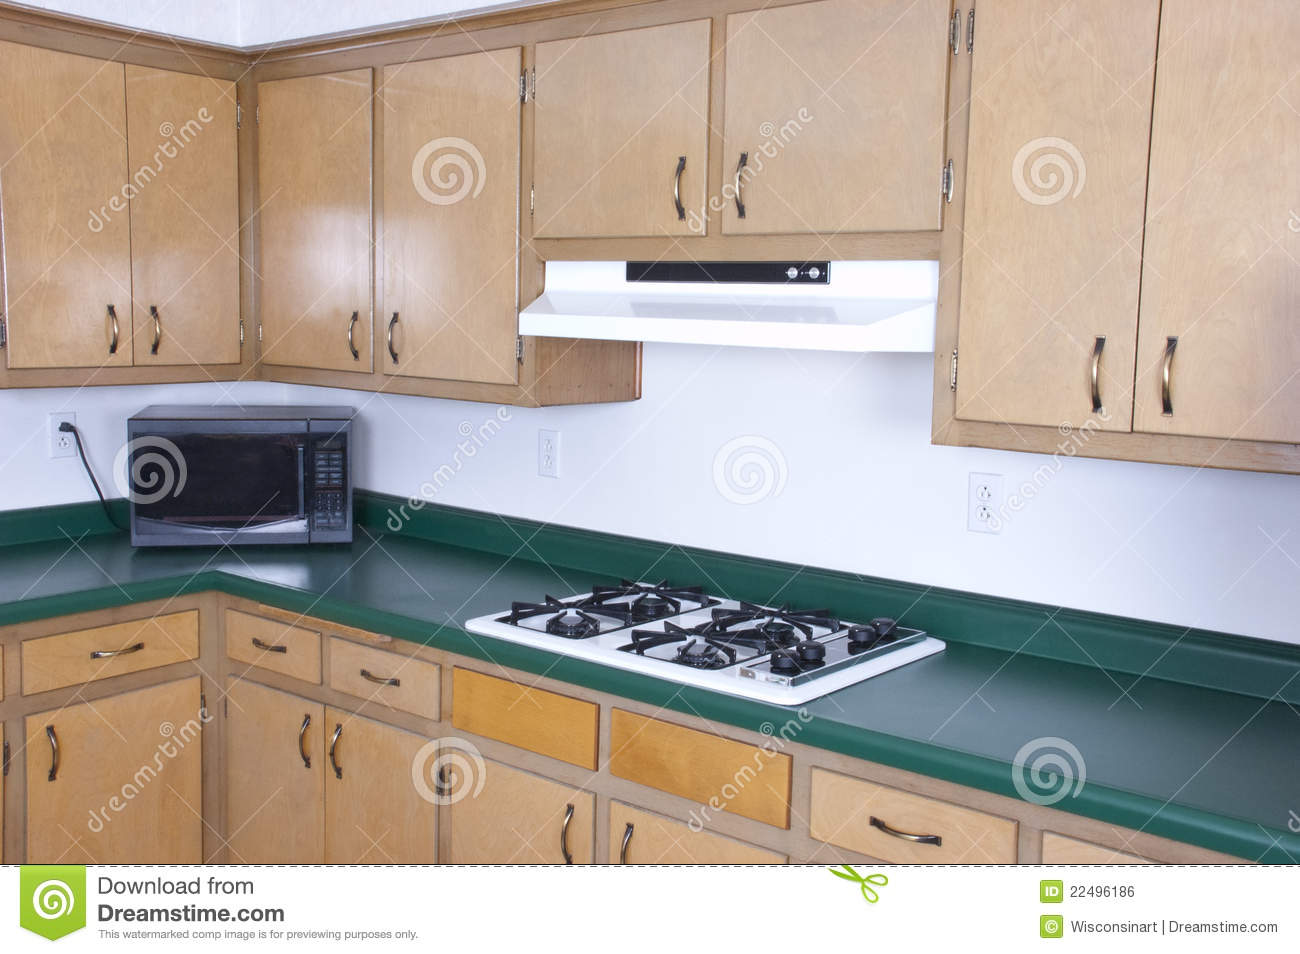 Old outdated kitchen cabinets needs remodeling stock photo for Renovating kitchen units